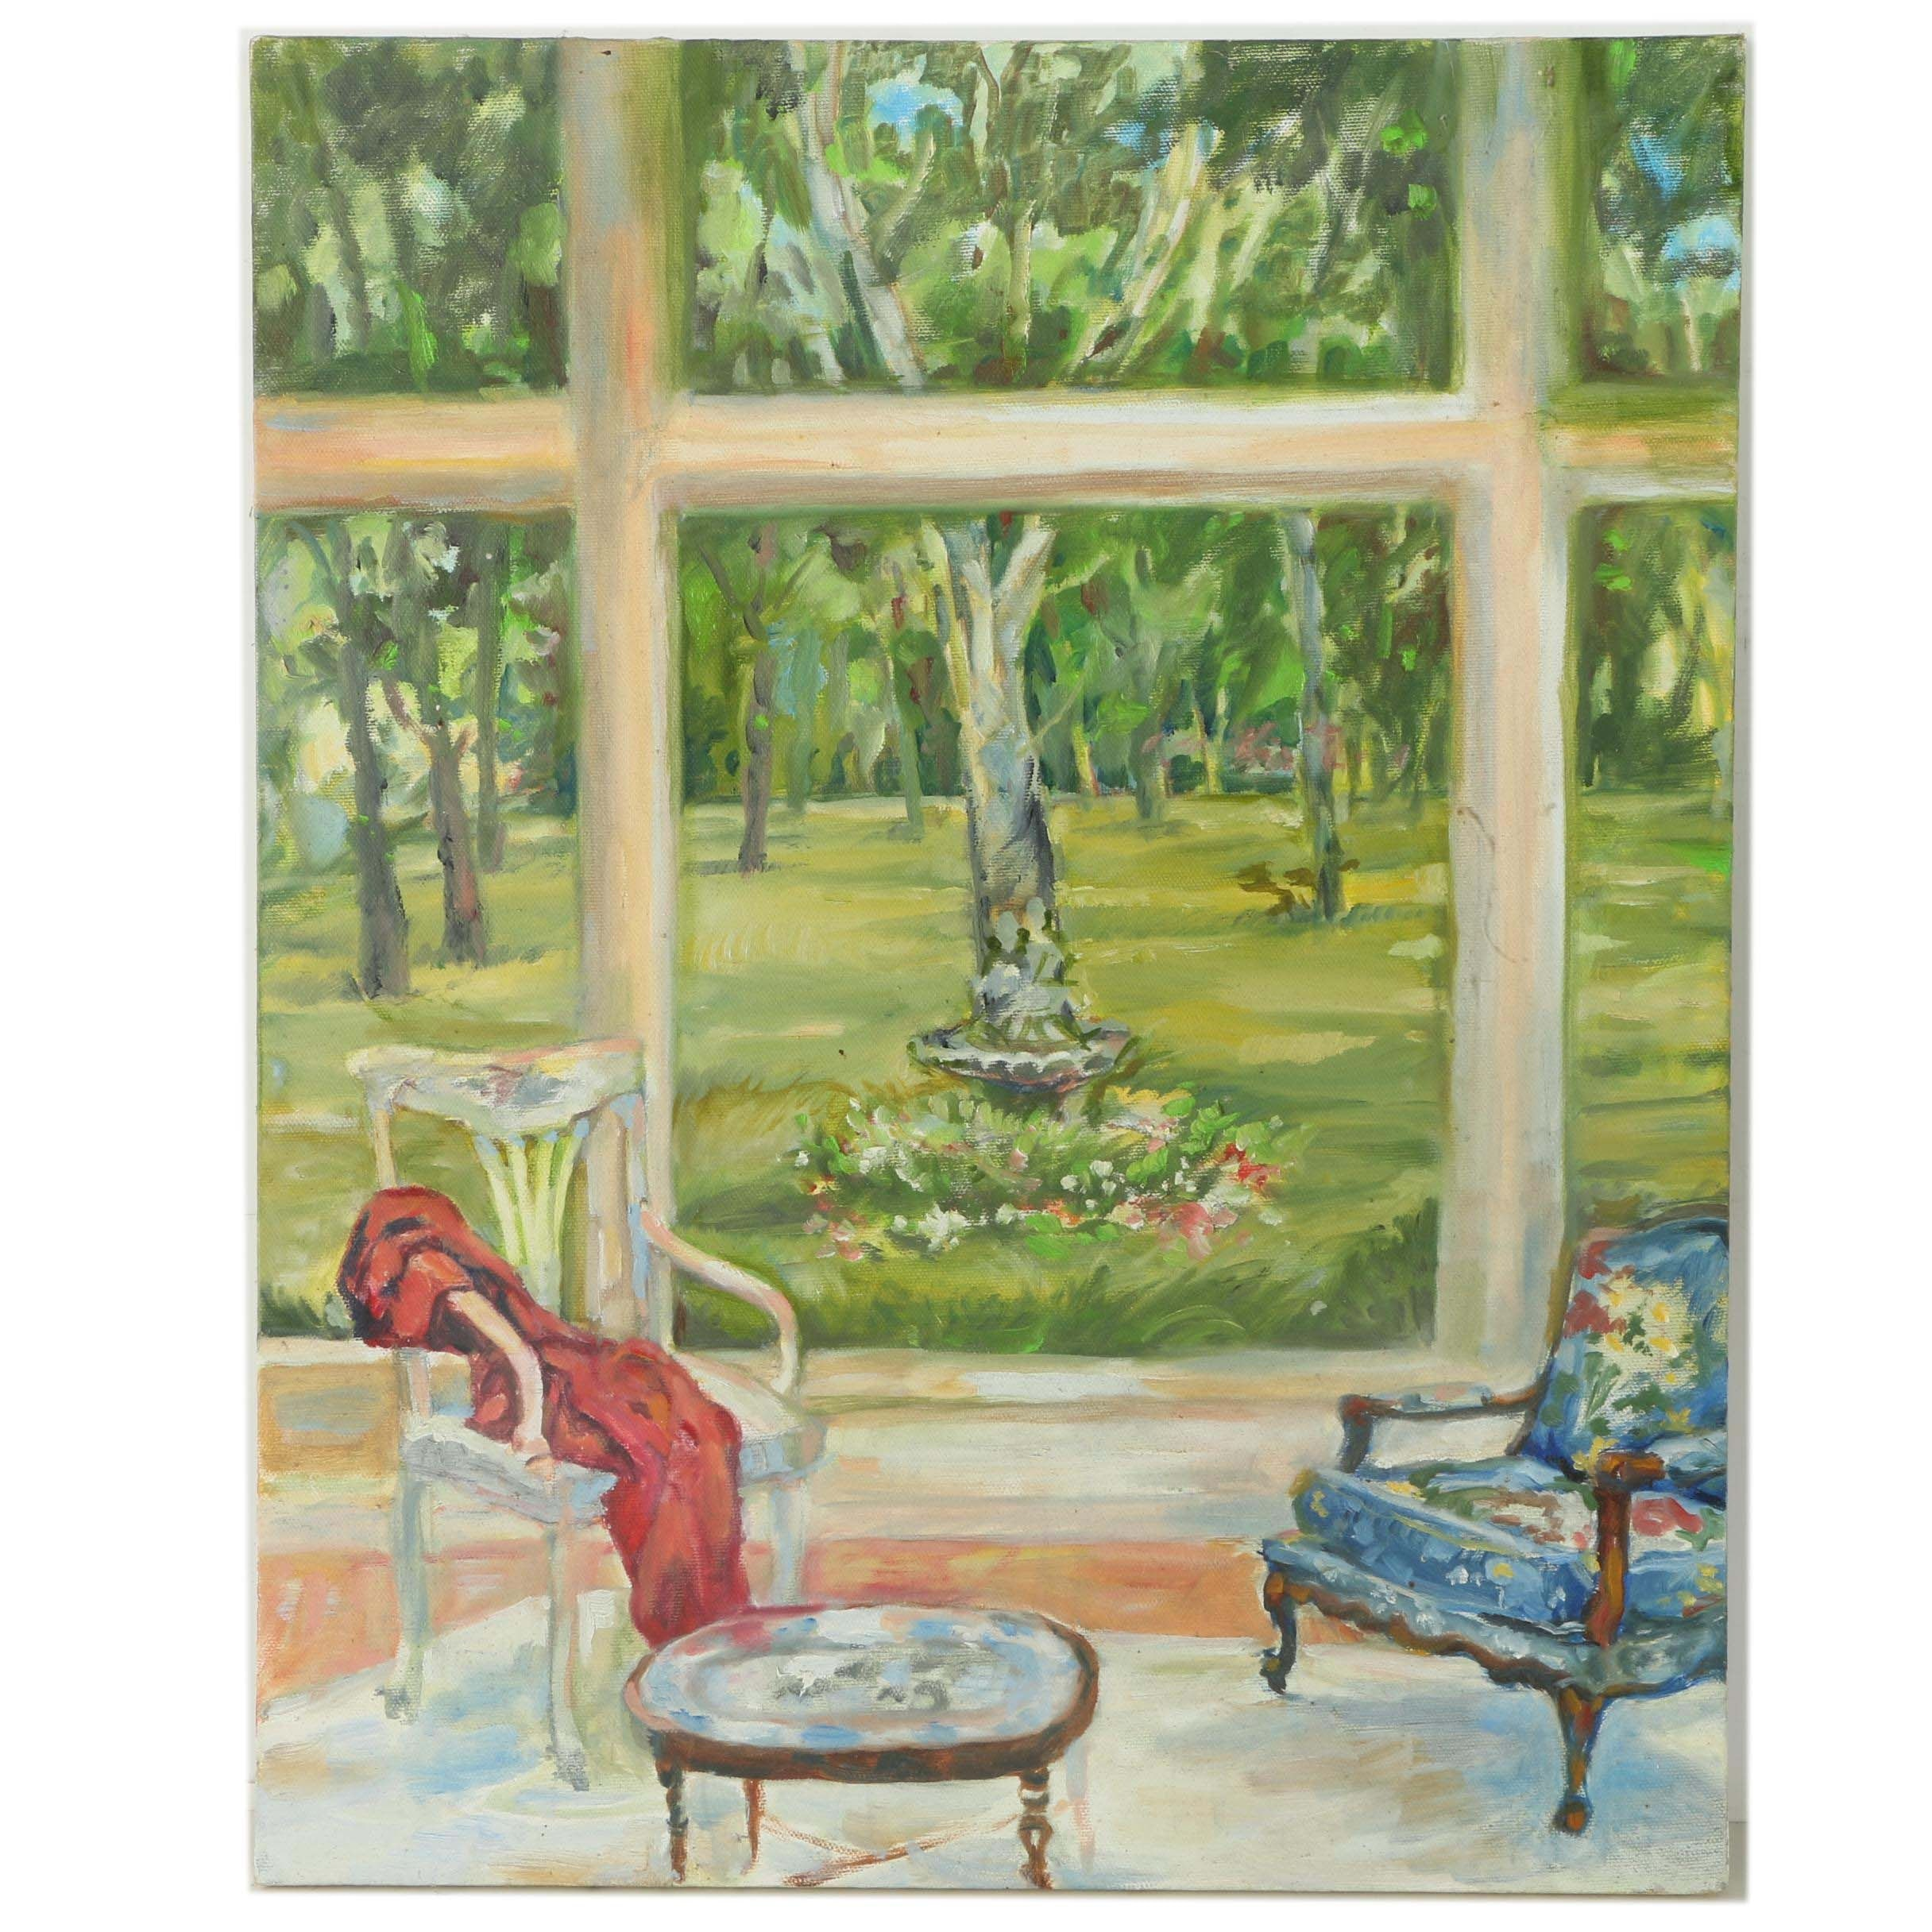 Oil Painting on Canvas of Two Chairs by Large Window with Wooded View